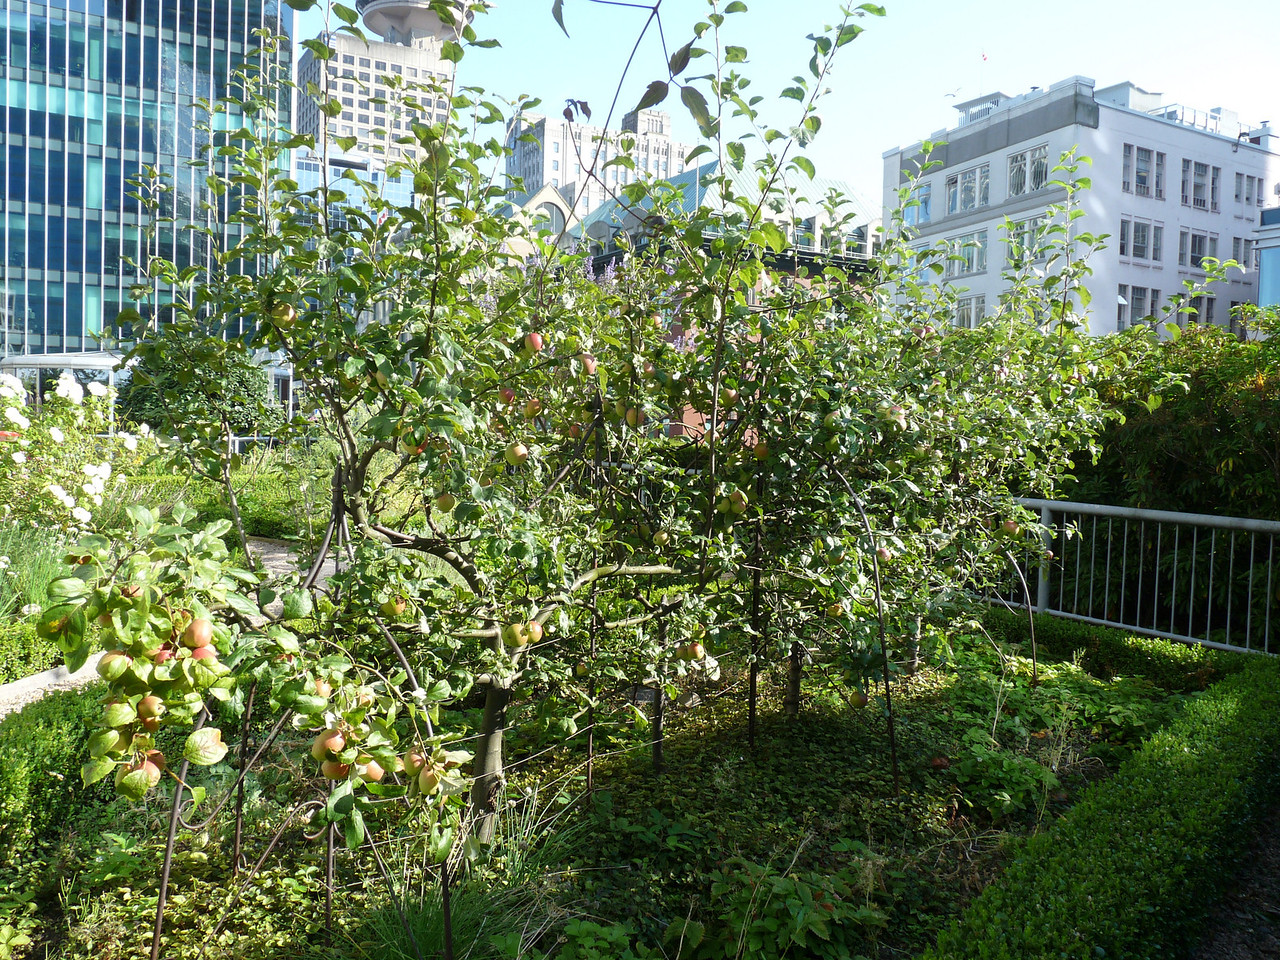 More apple trees, trained on those crazy trellises that I can't think of the name of.